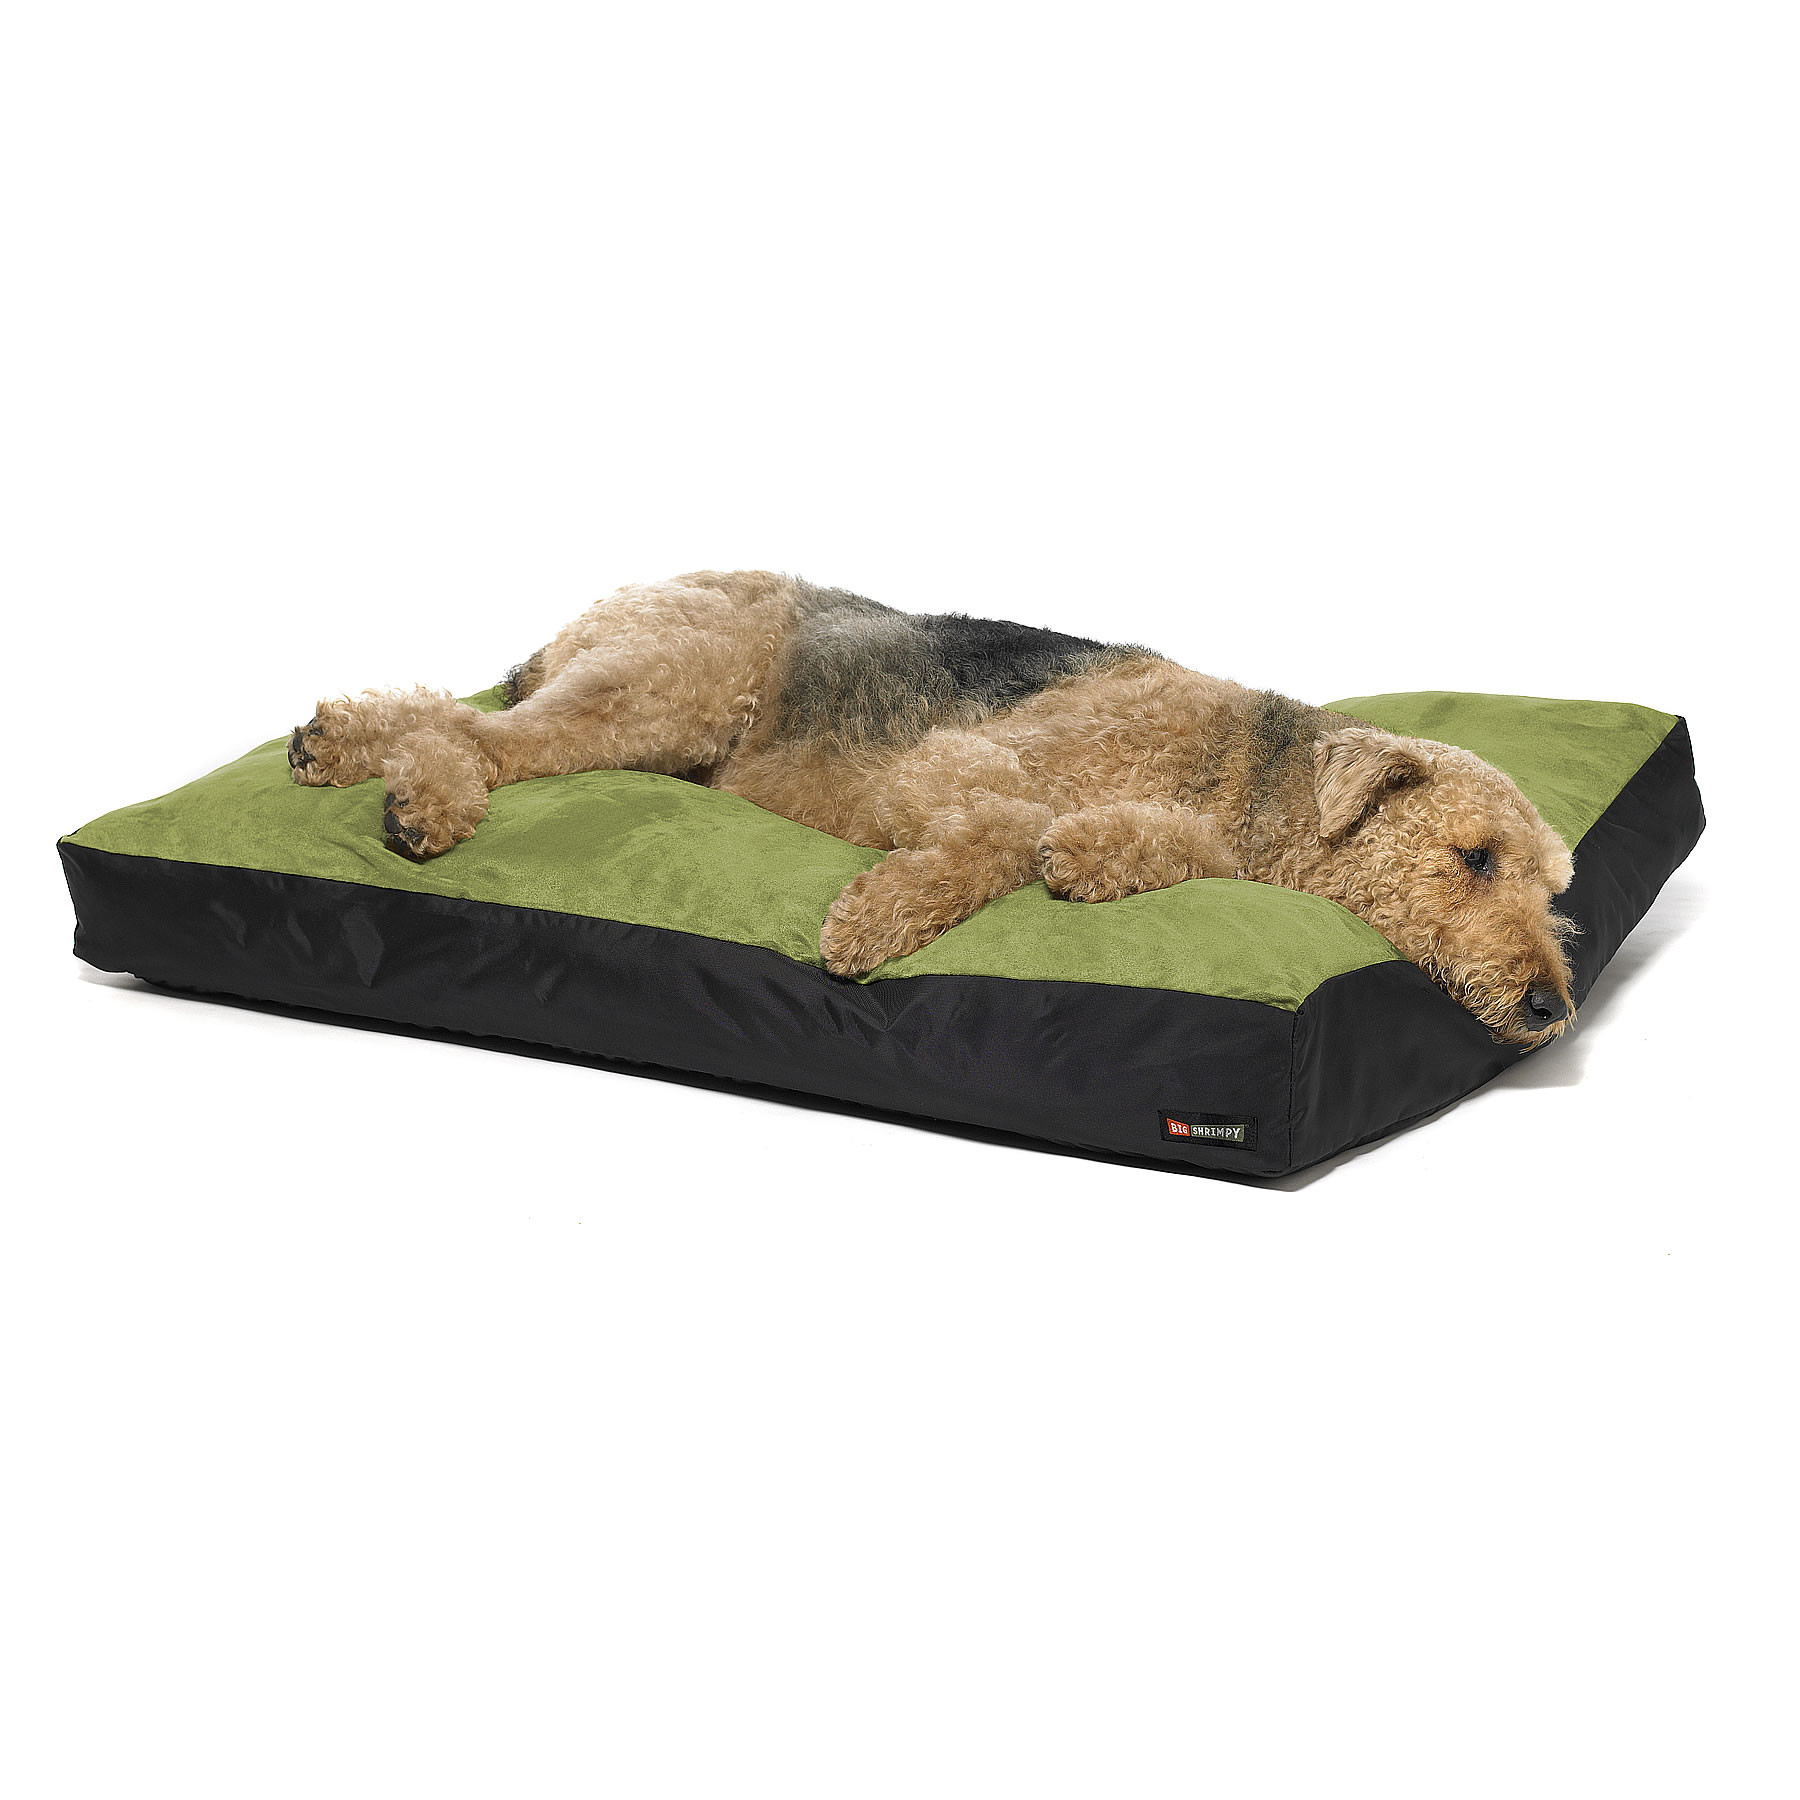 Big Shrimpy Original Dog Bed